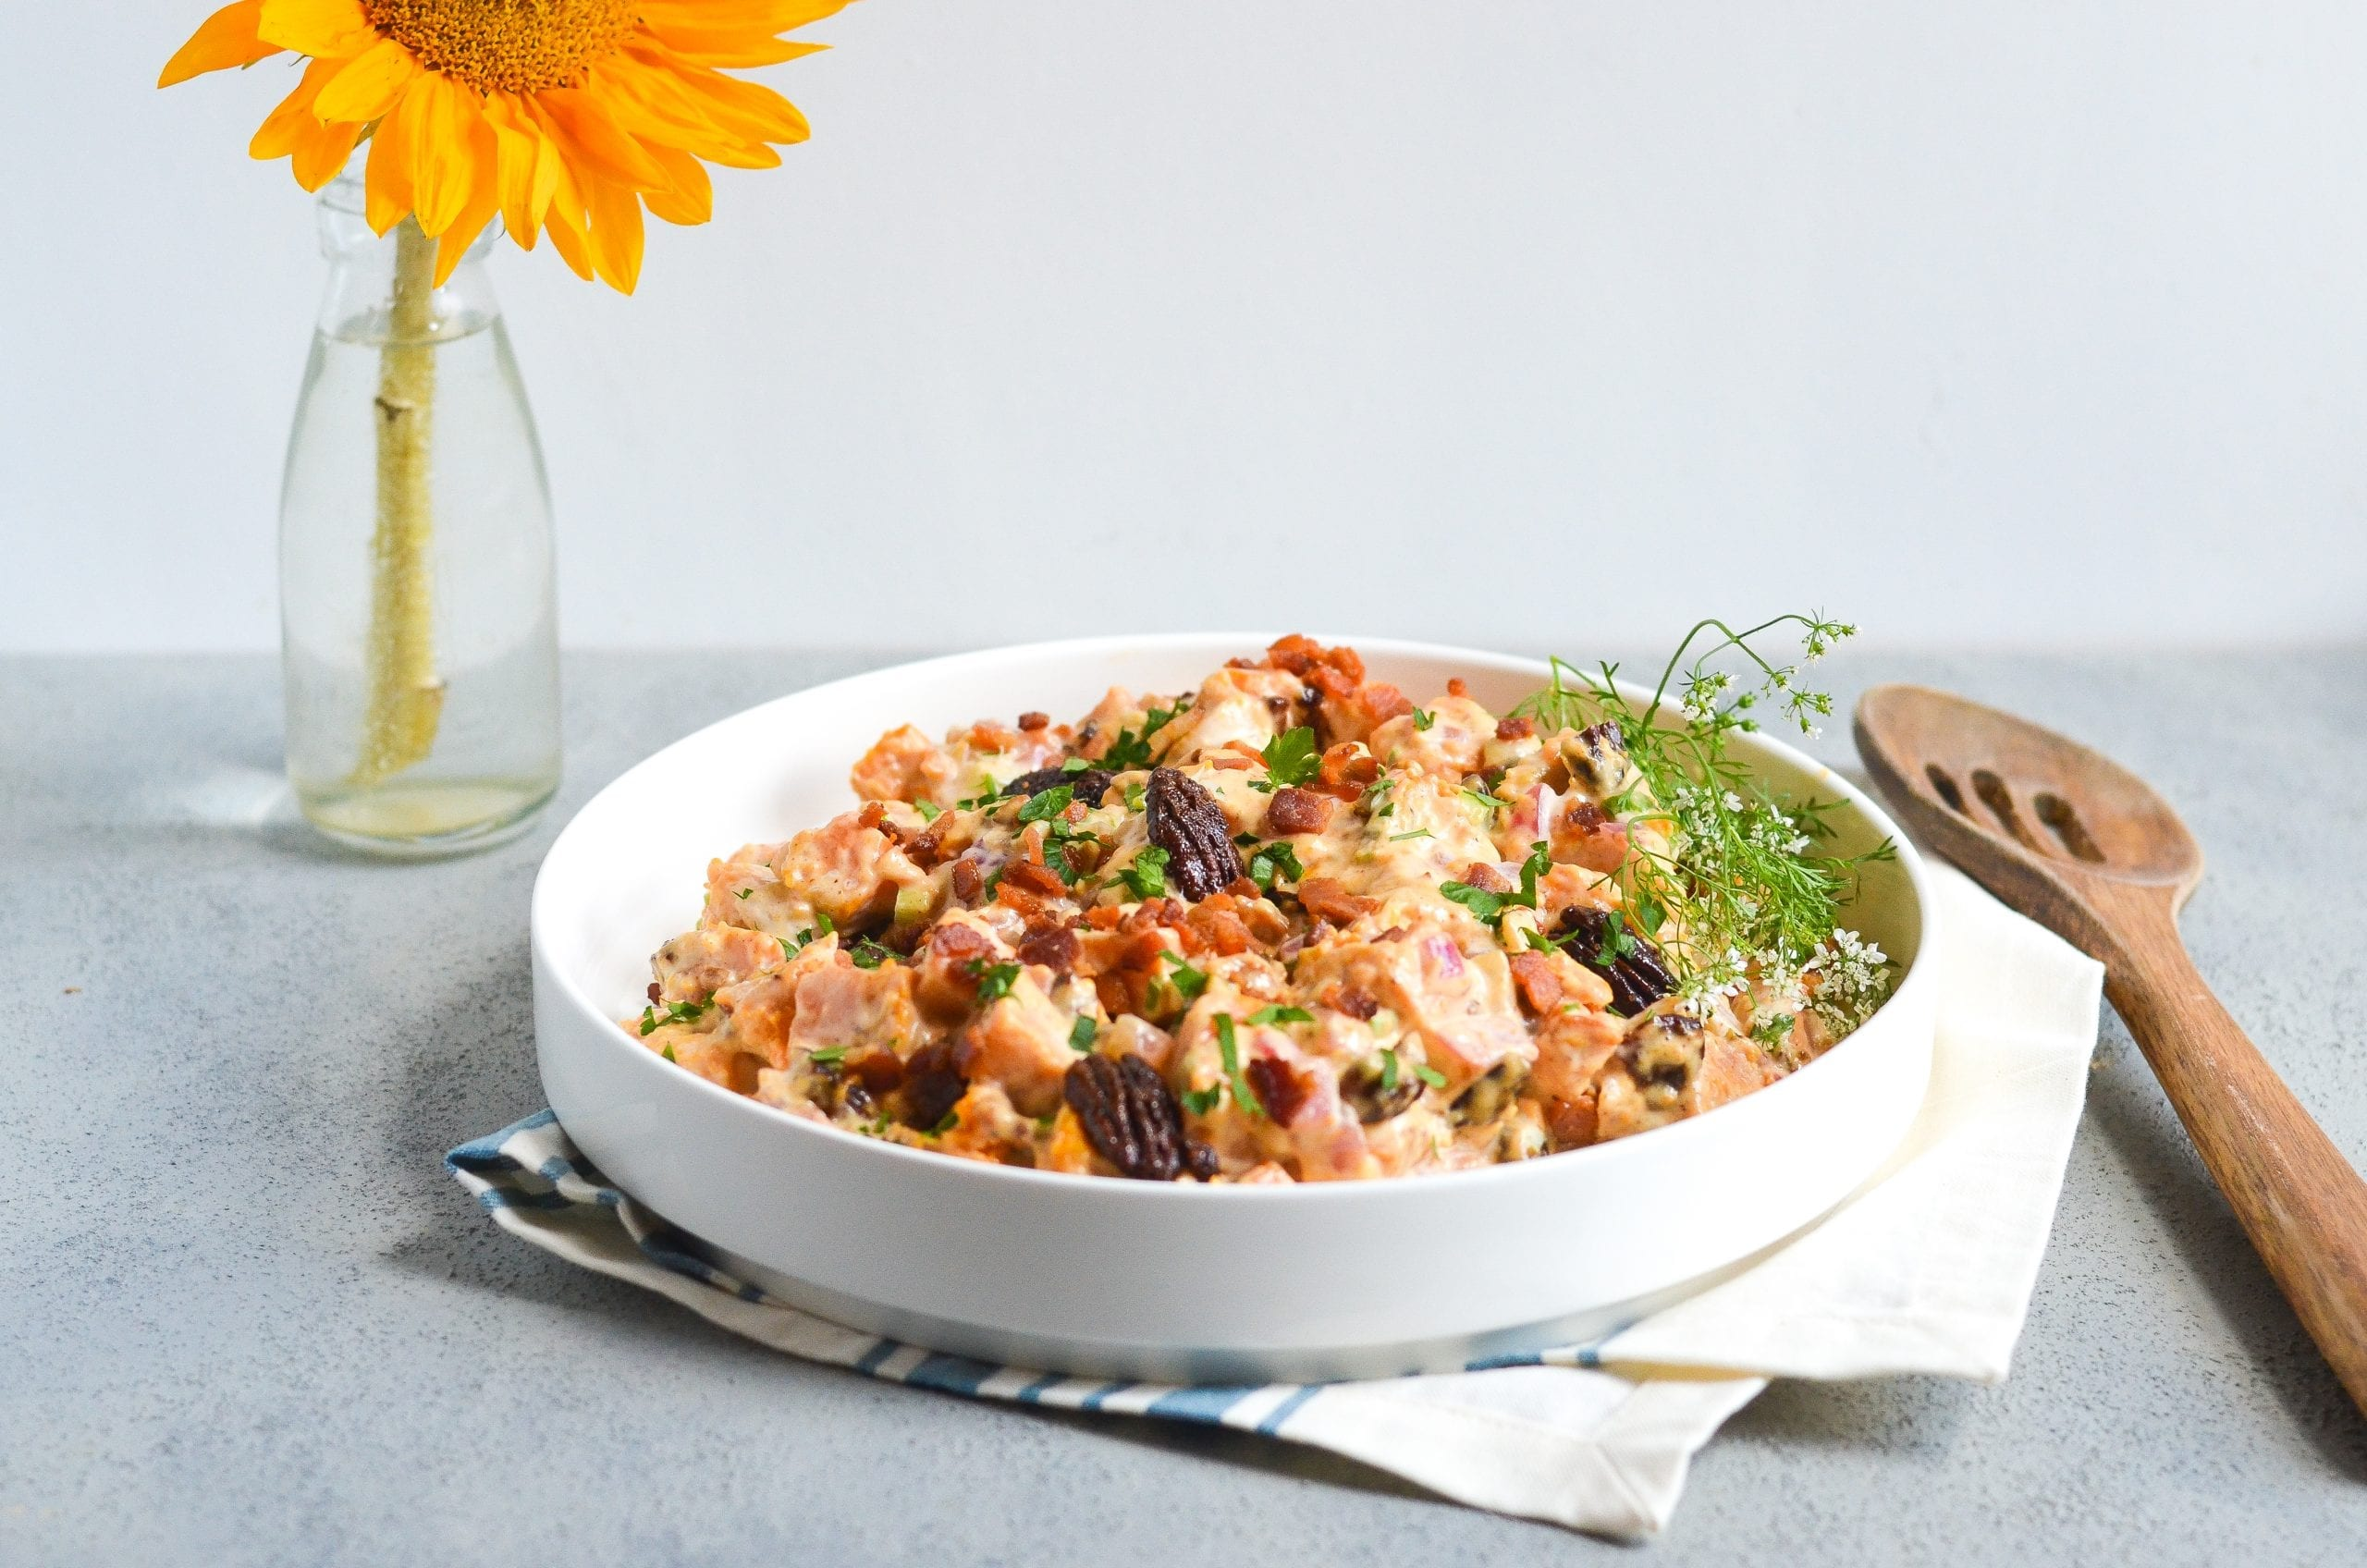 Sweet Potato Salad with Bacon and Spiced Pecans